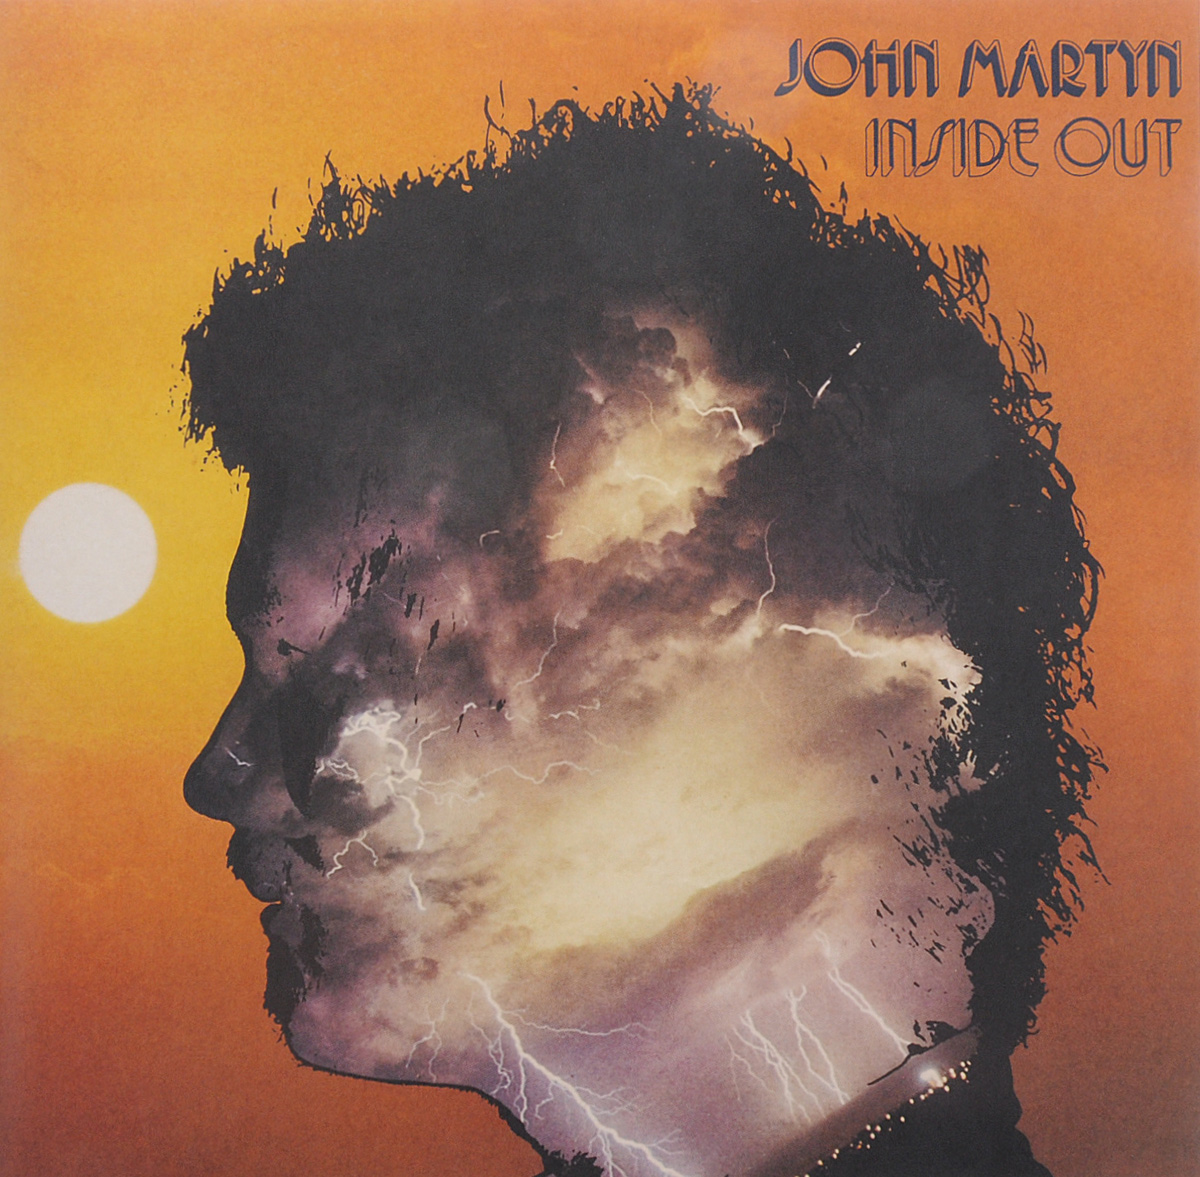 Джон Мартин John Martyn. Inside Out (LP) джон мартин john martyn one world